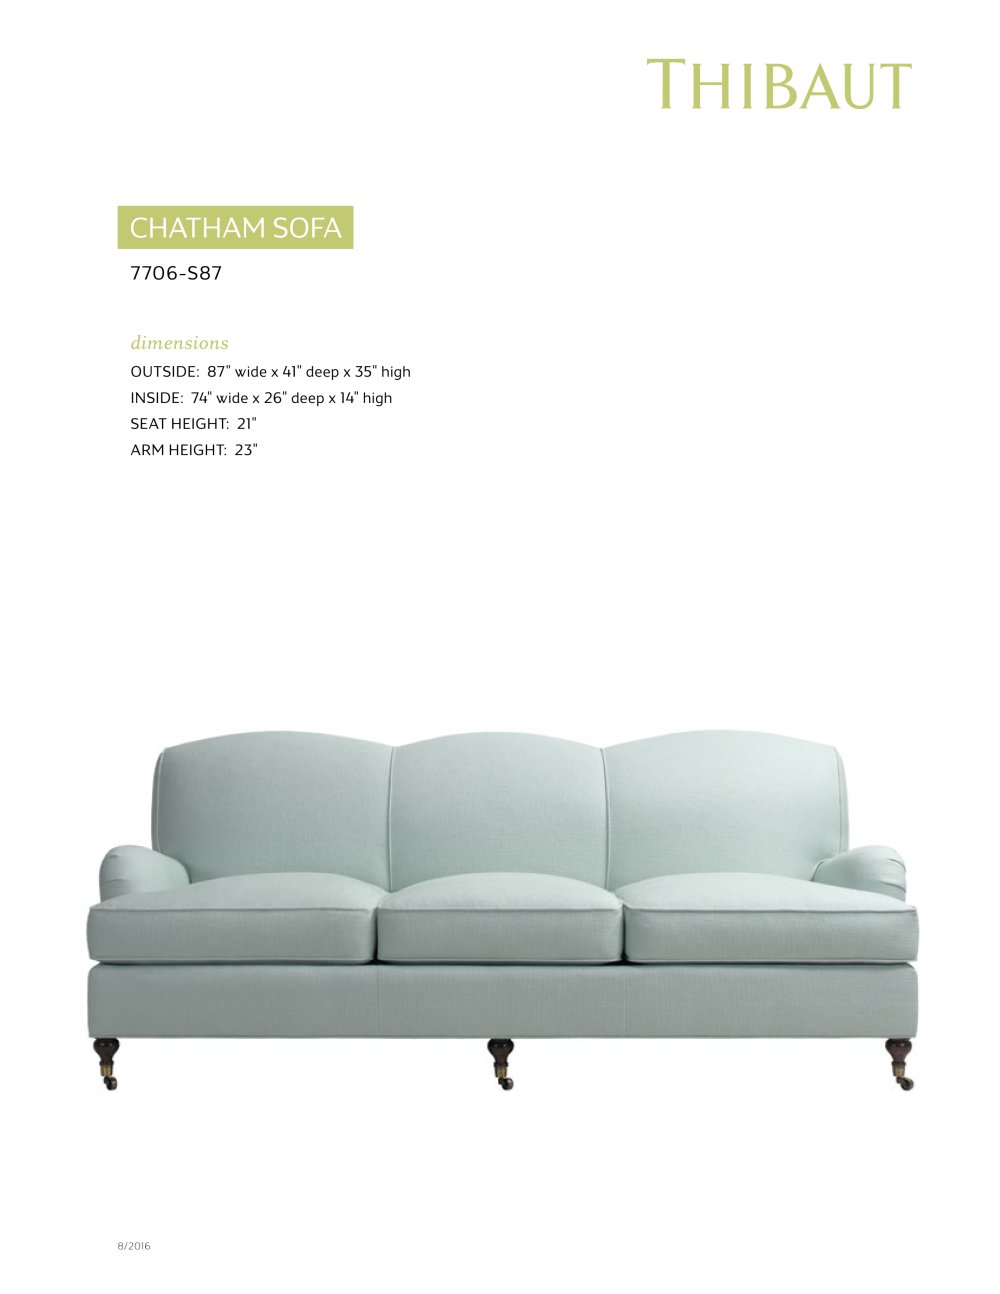 Bon CHATHAM SOFA   1 / 2 Pages